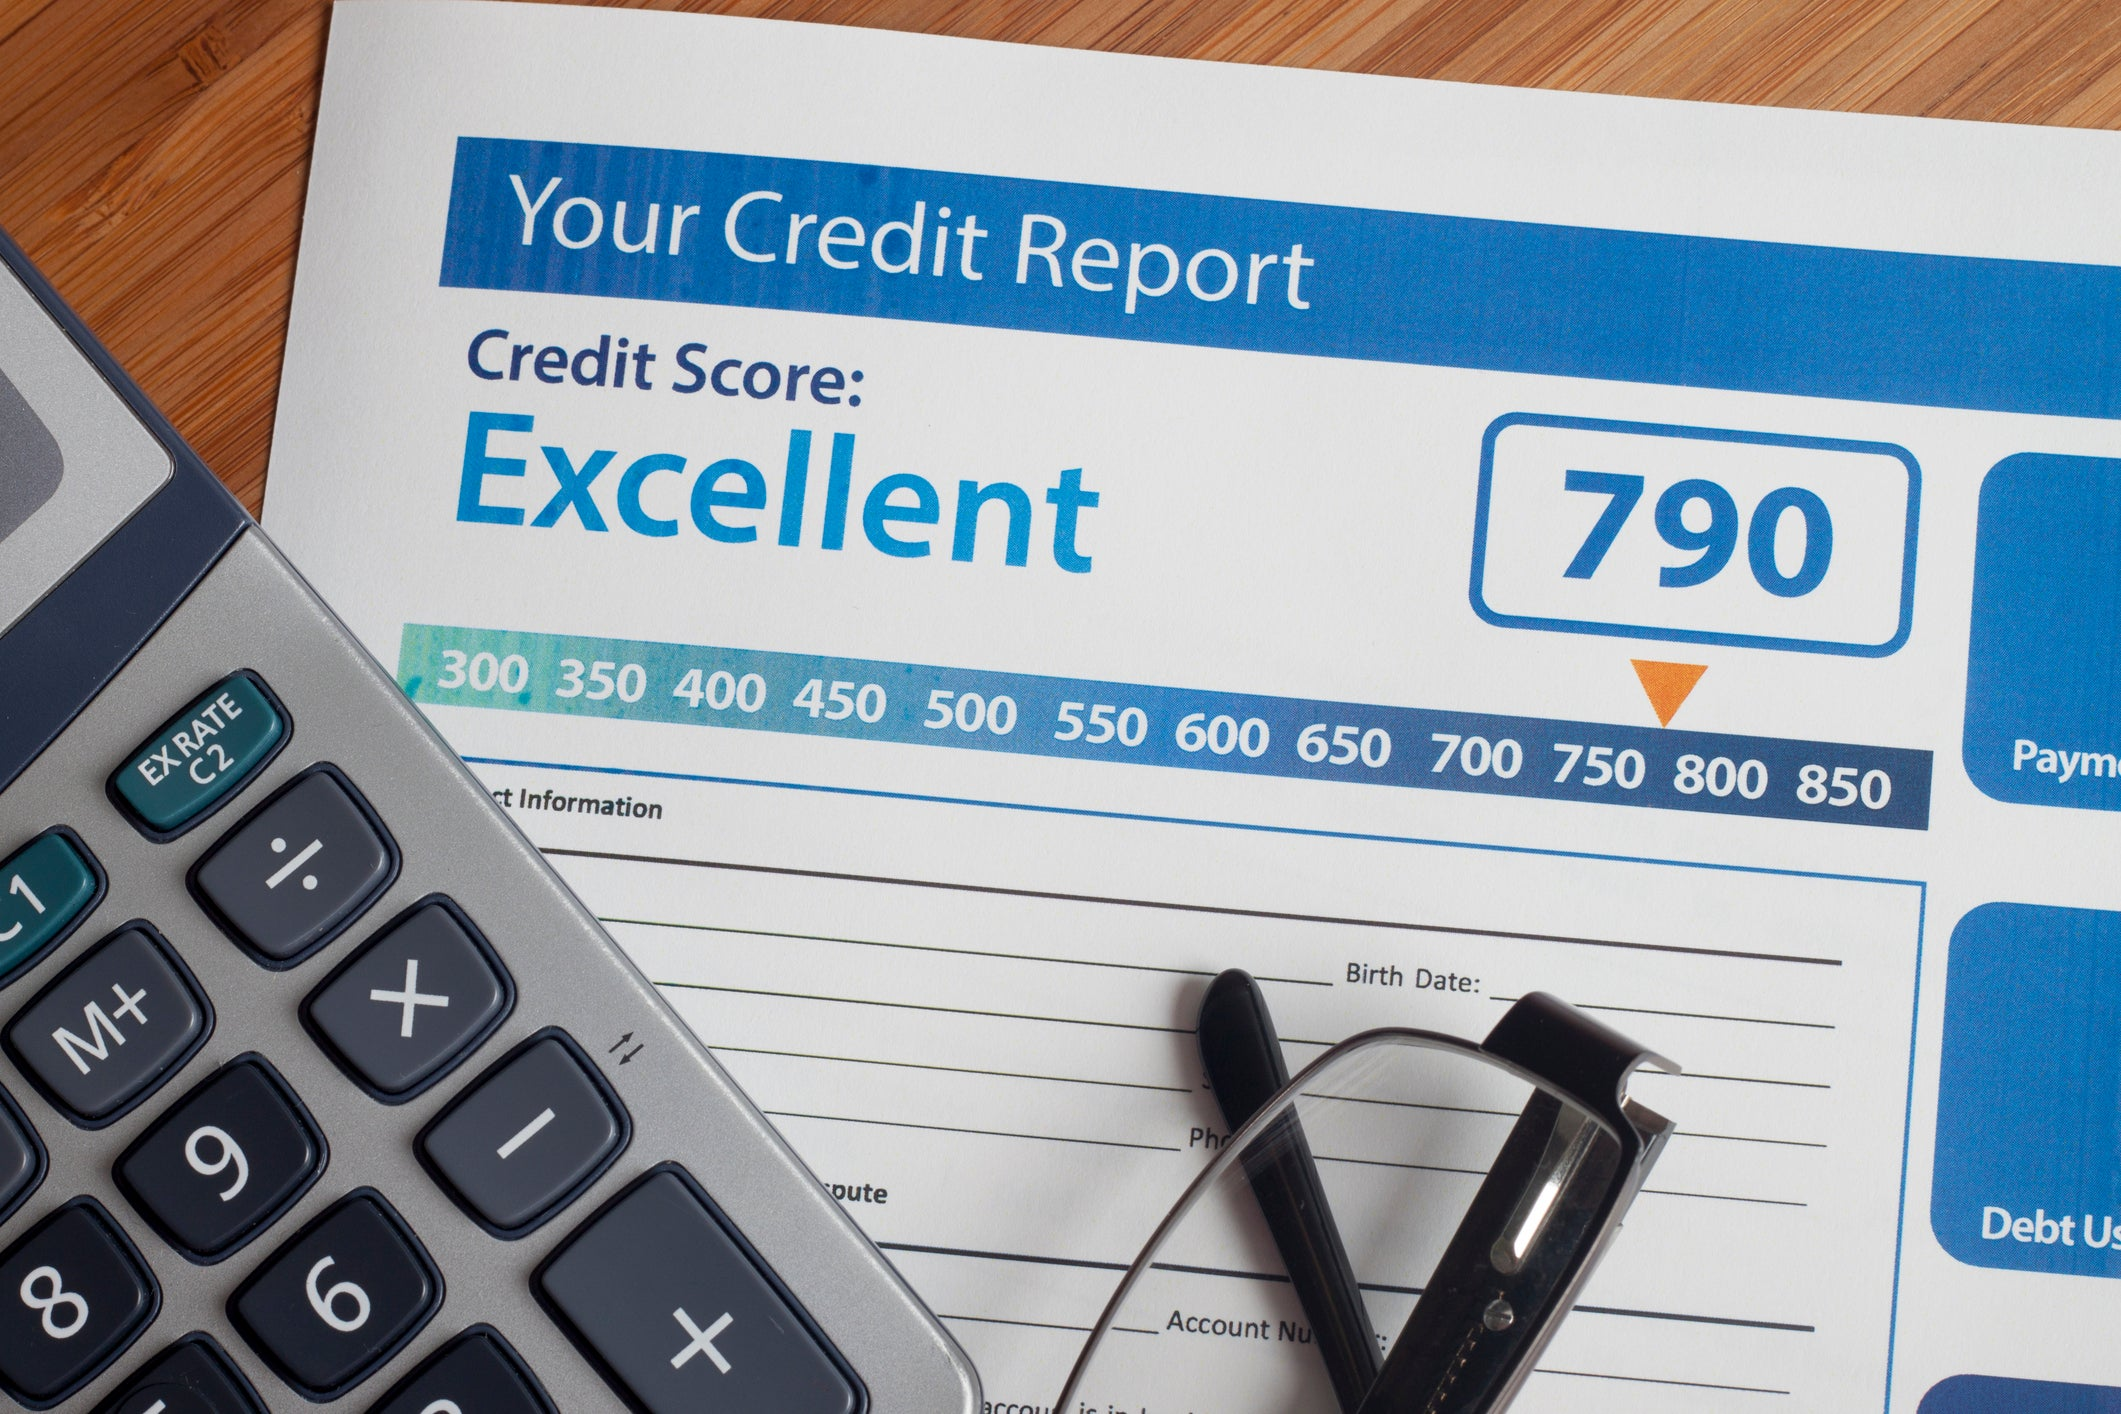 An invaluable credit lesson from someone with perfect credit